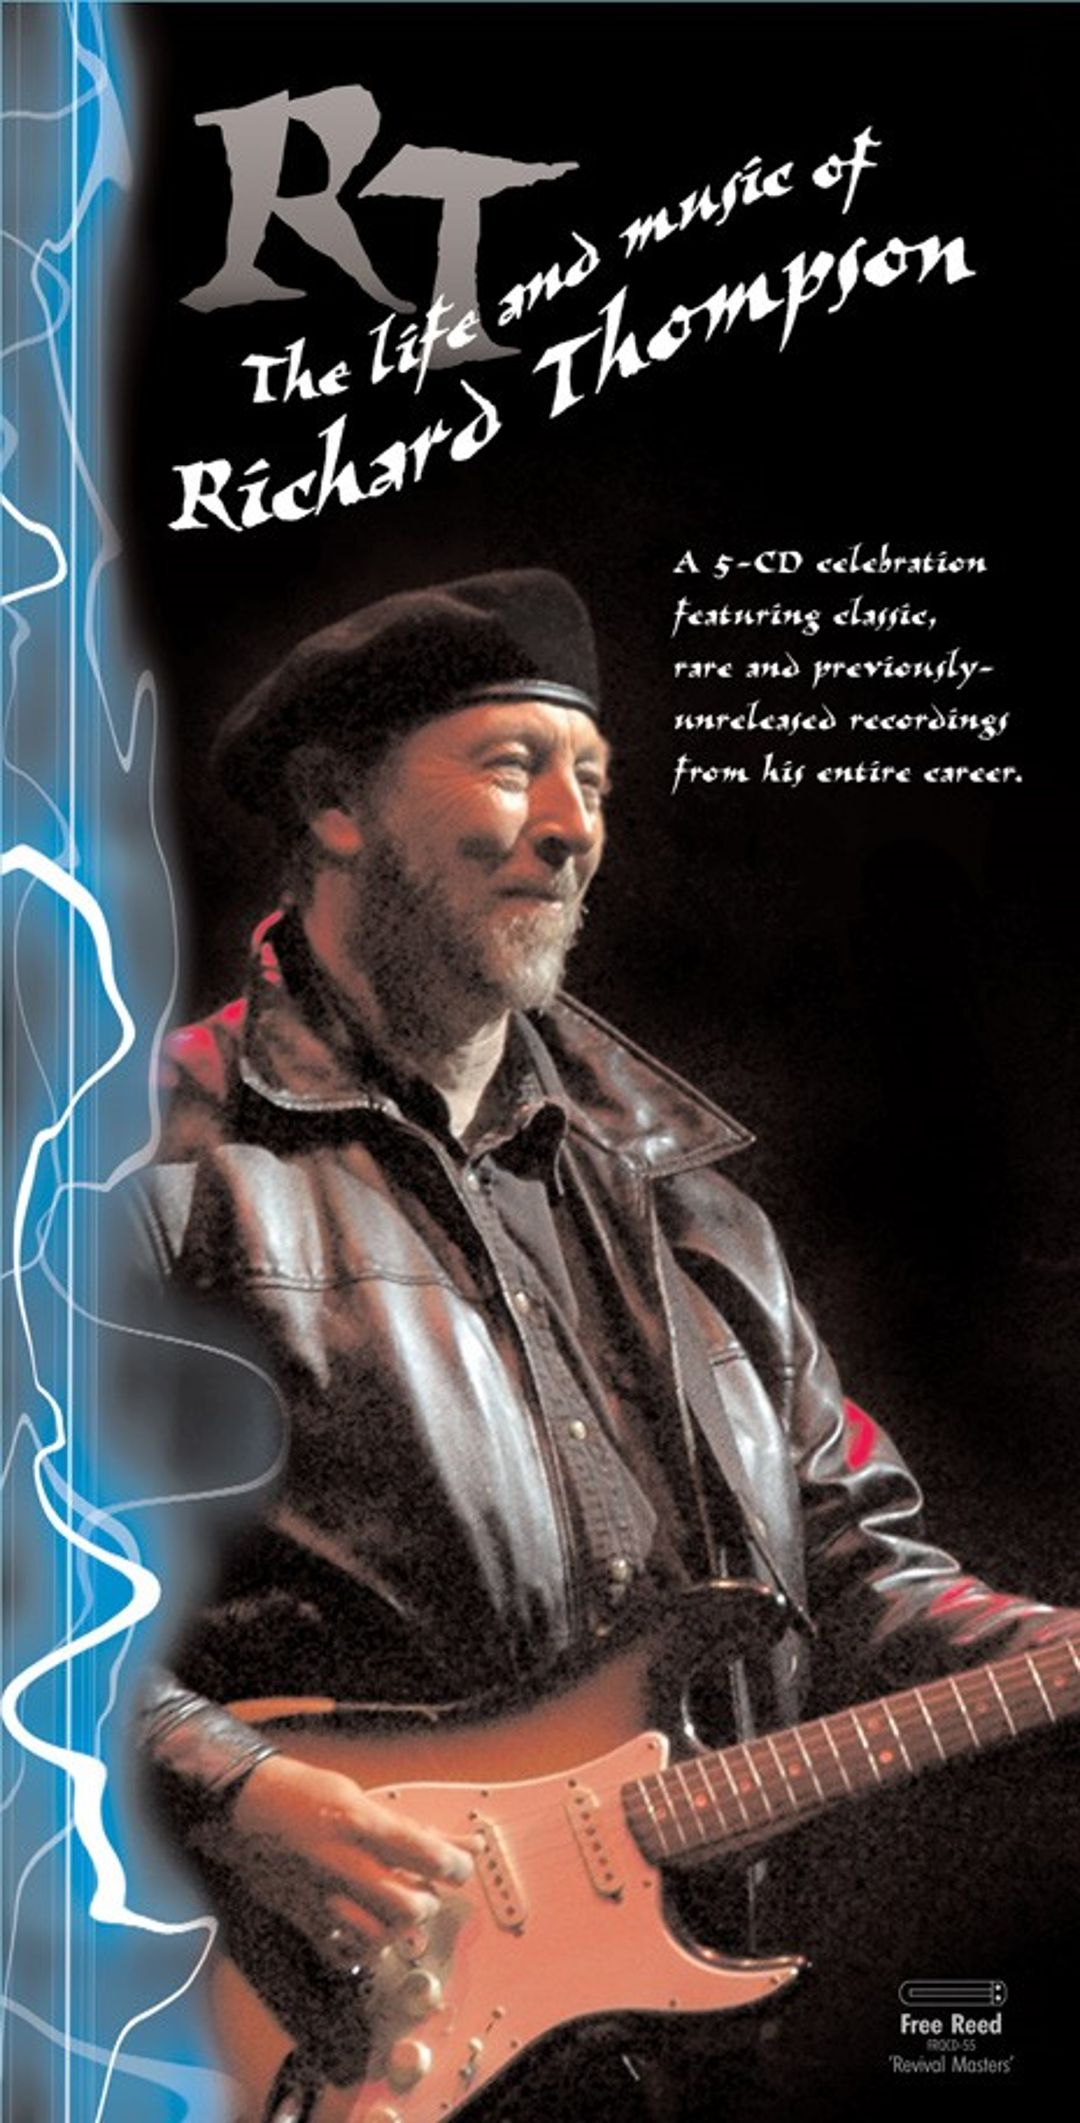 The Life Of Adventure: RT: The Life And Music Of Richard Thompson